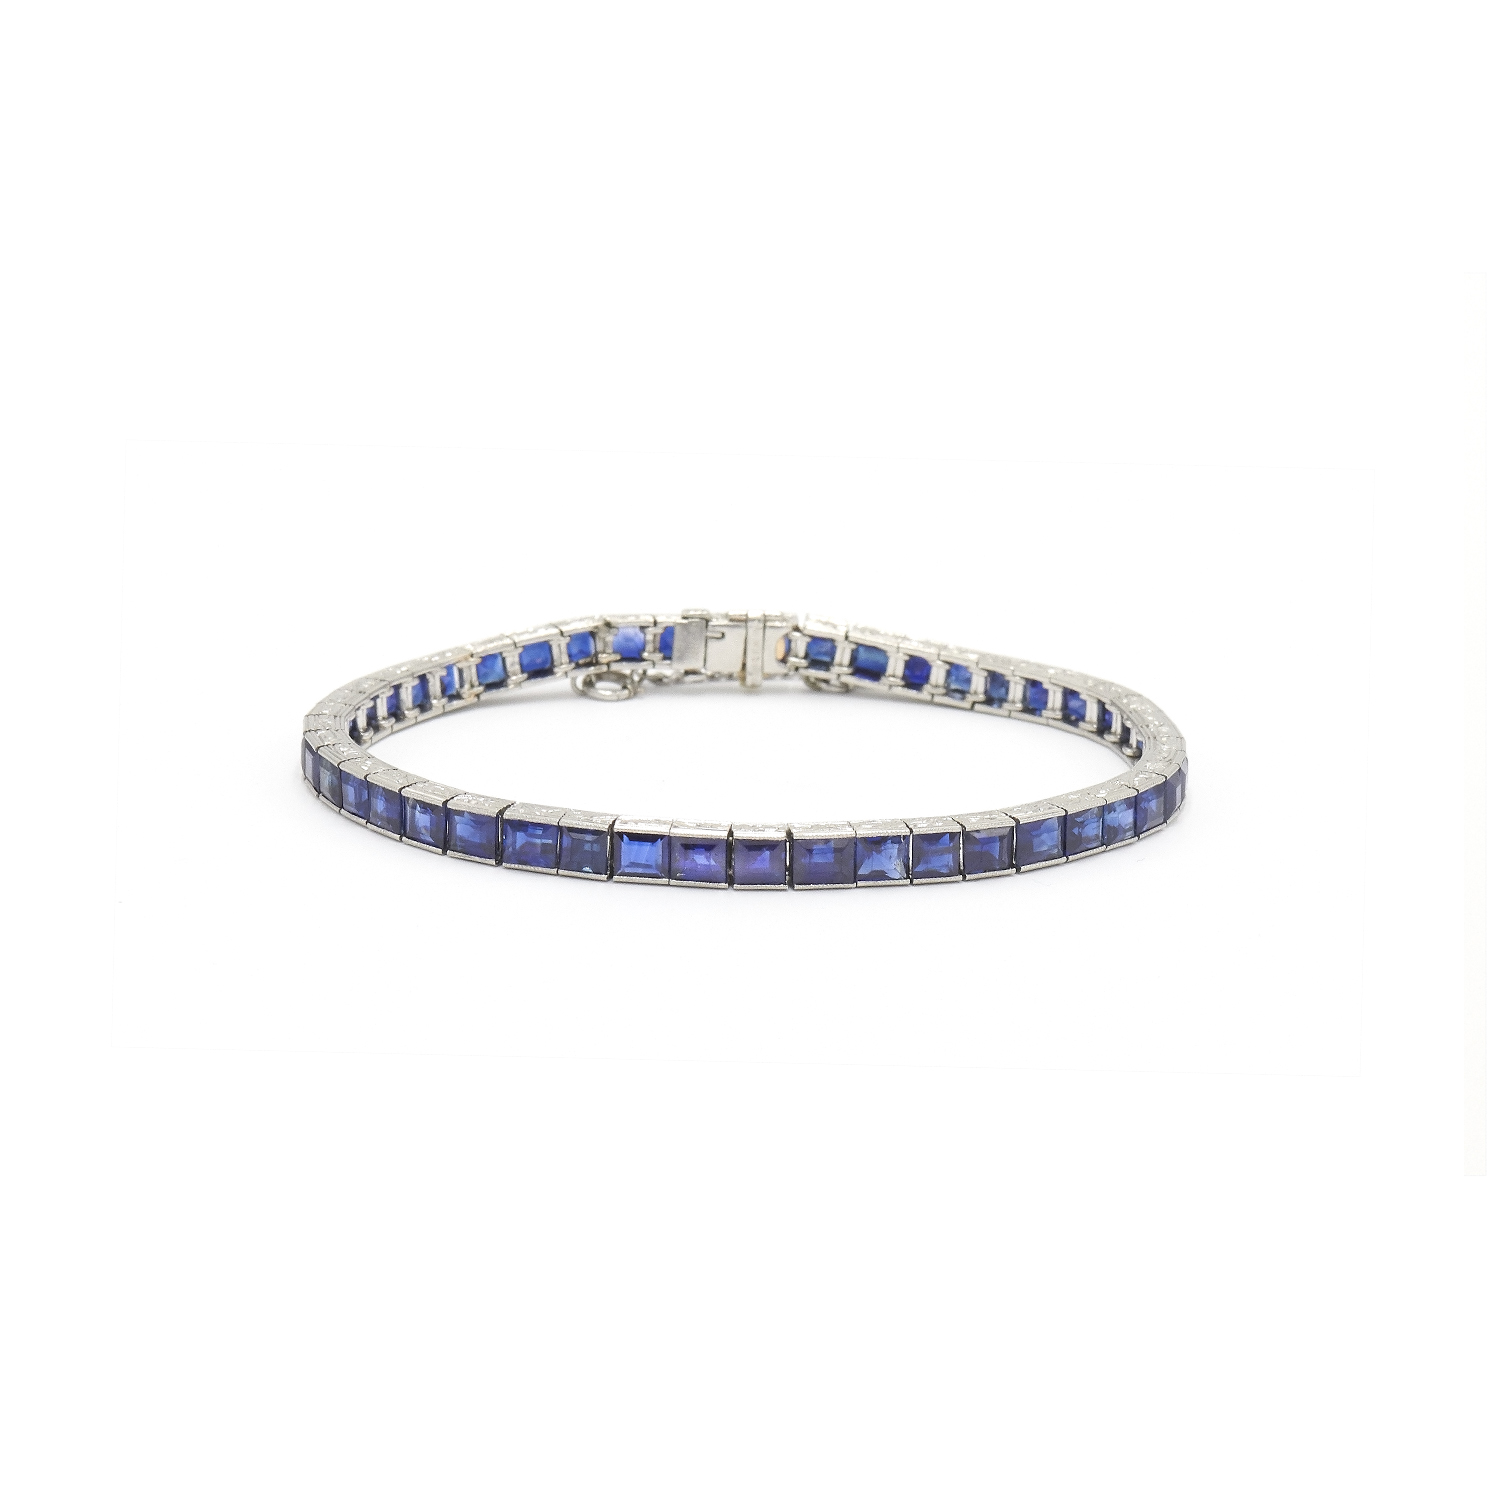 Art Deco Platinum Sapphire Line Bracelet by Tiffany & Co. Style B-41144-FL-0-0